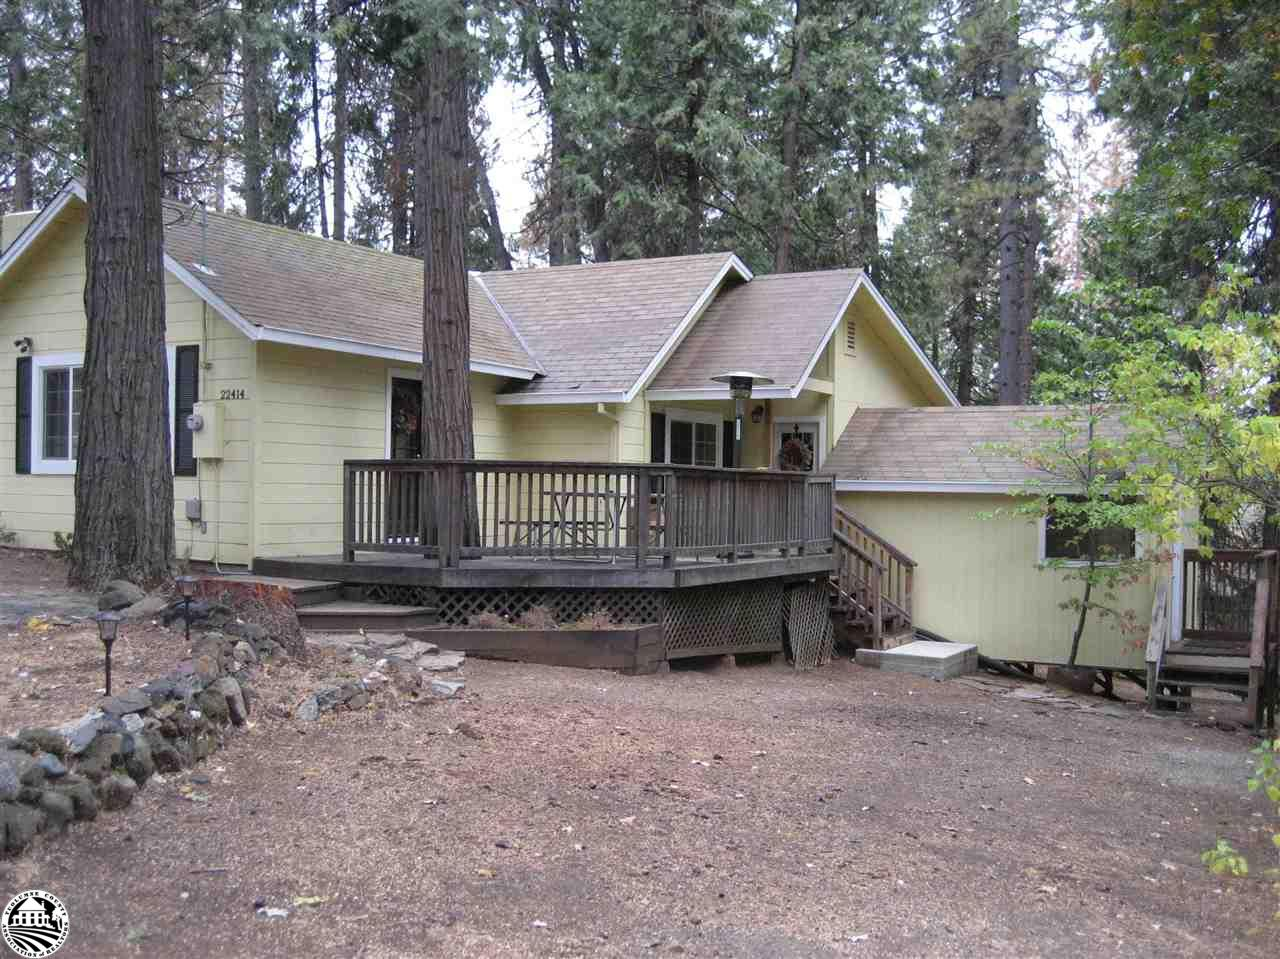 tuolumne county singles Come experience the tranquil lifestyle of tuolumne county and purchase this single level home privately located in the quiet community of tuolumne.